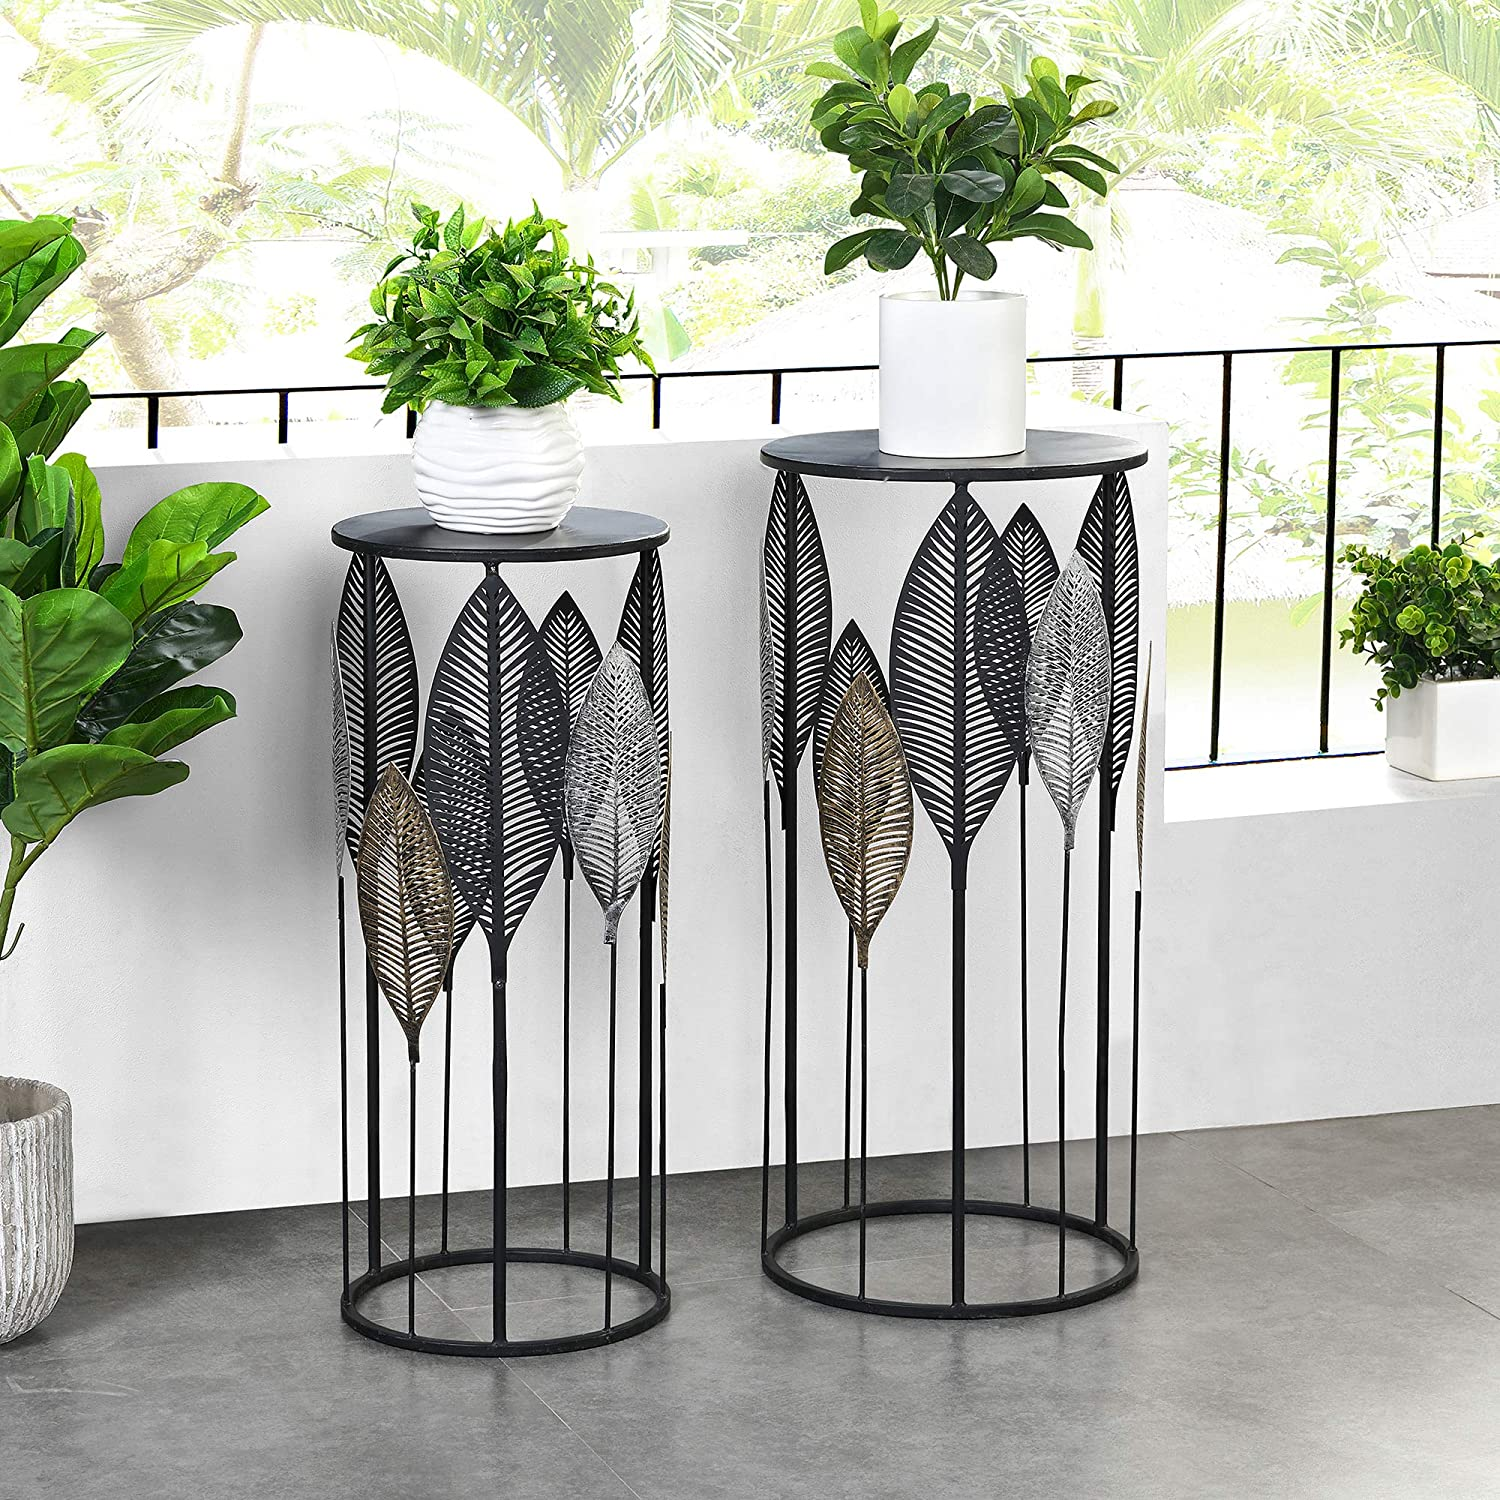 FirsTime & Co. Loraina Leaves Outdoor Plant Stand 2-Piece Set, American Crafted, Black, 12.5 x 12.5 x 27.5 ,